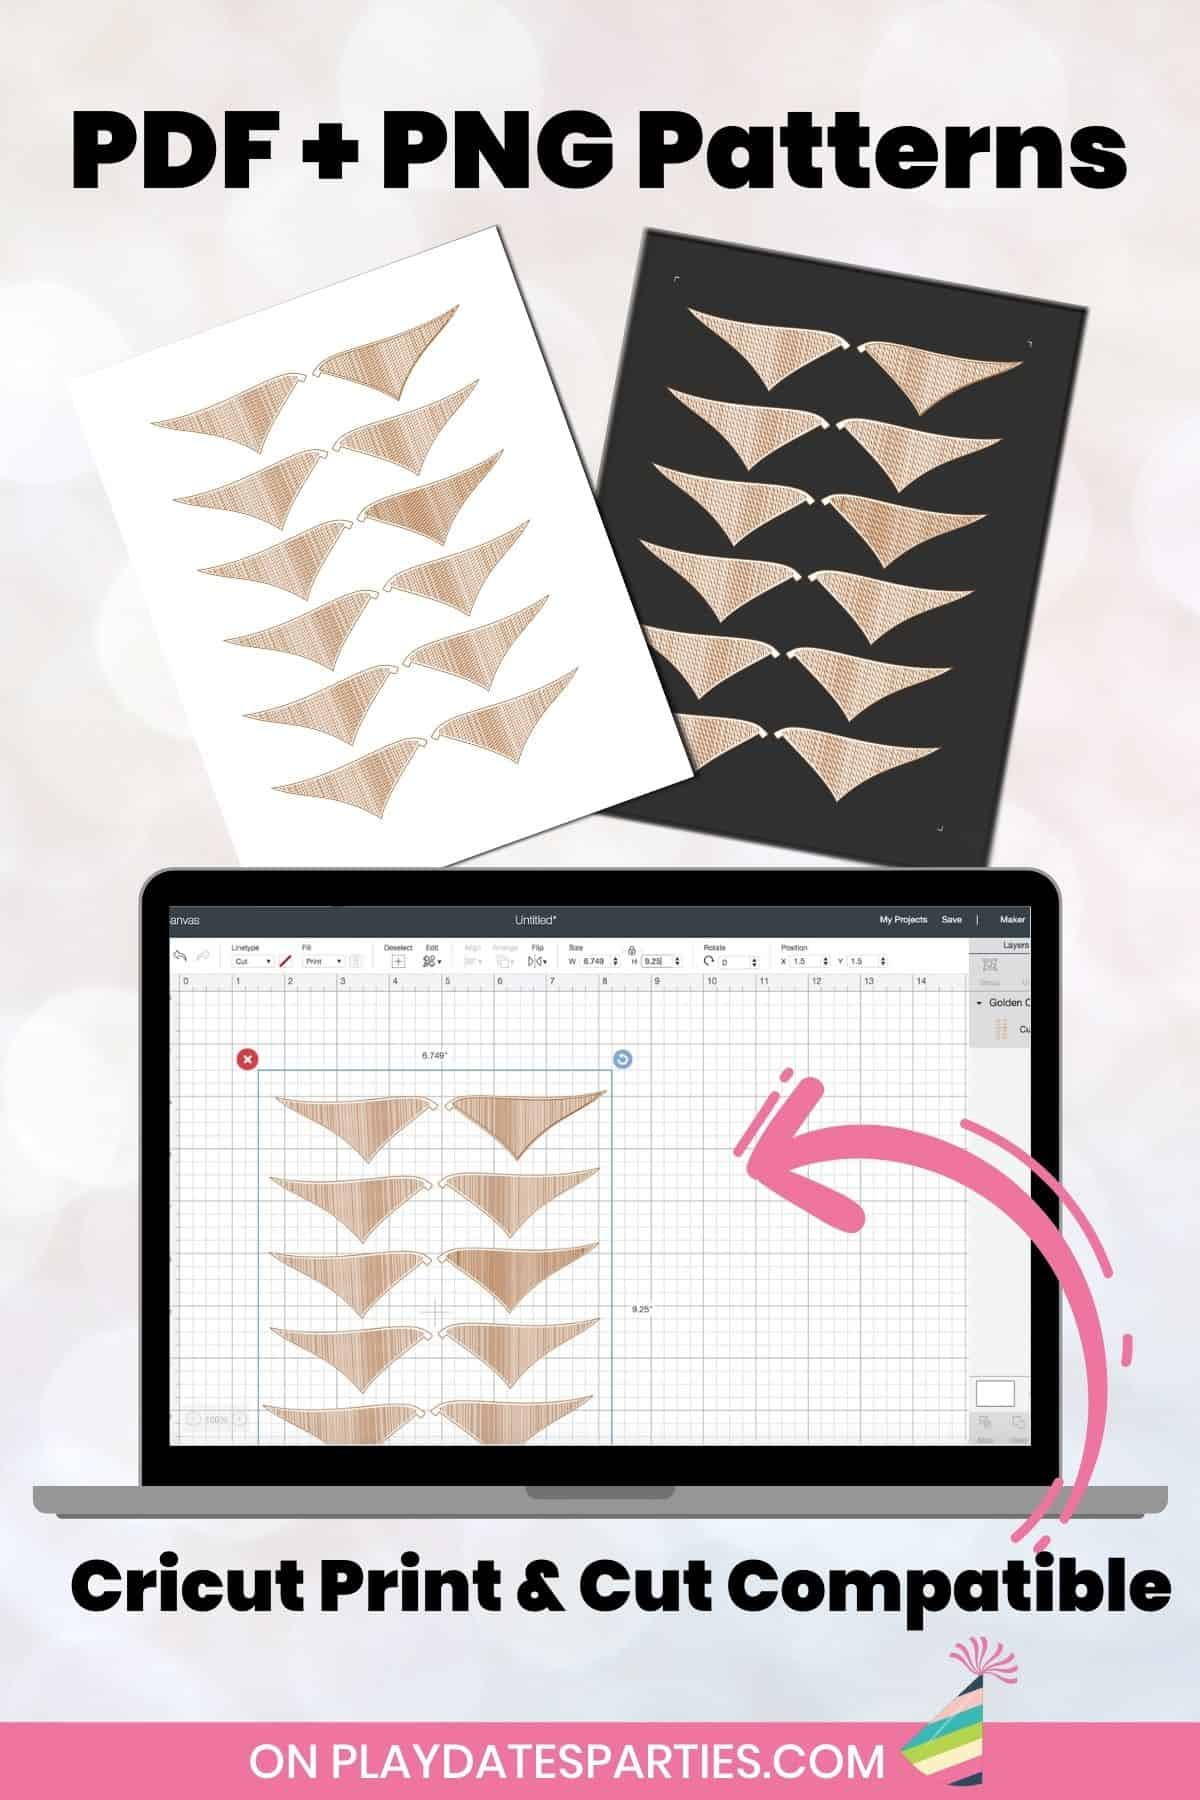 Mockup of PDF and PNG versions of the printable wings.